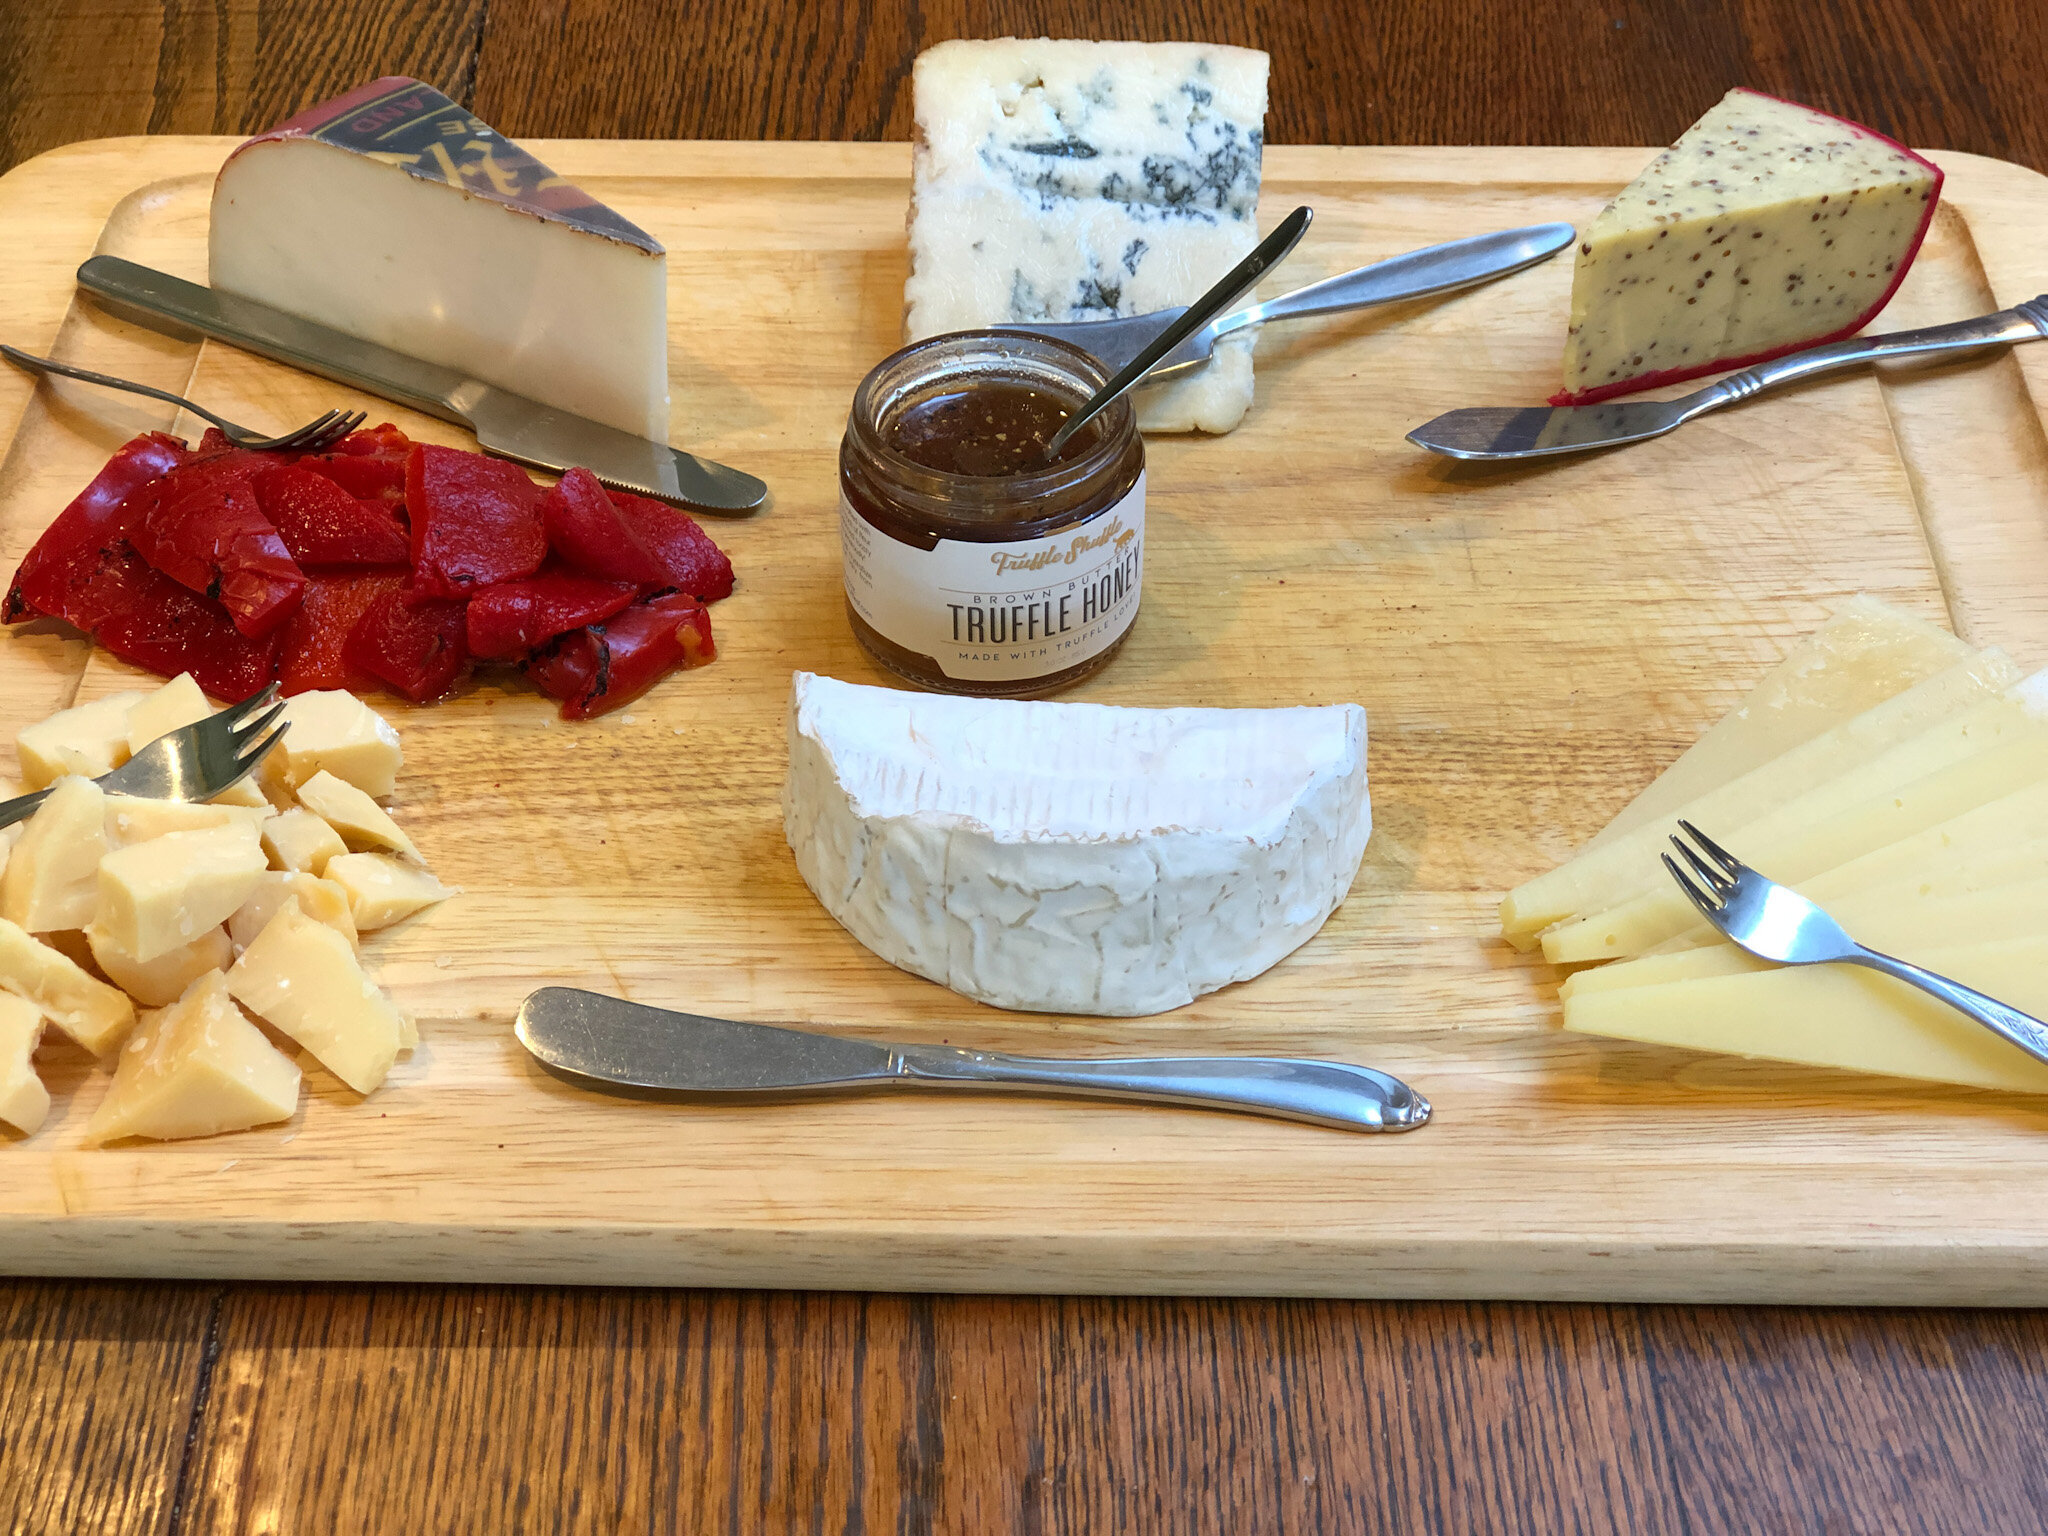 When creating Cheese board your cheese board, of course, it all starts with the cheese.